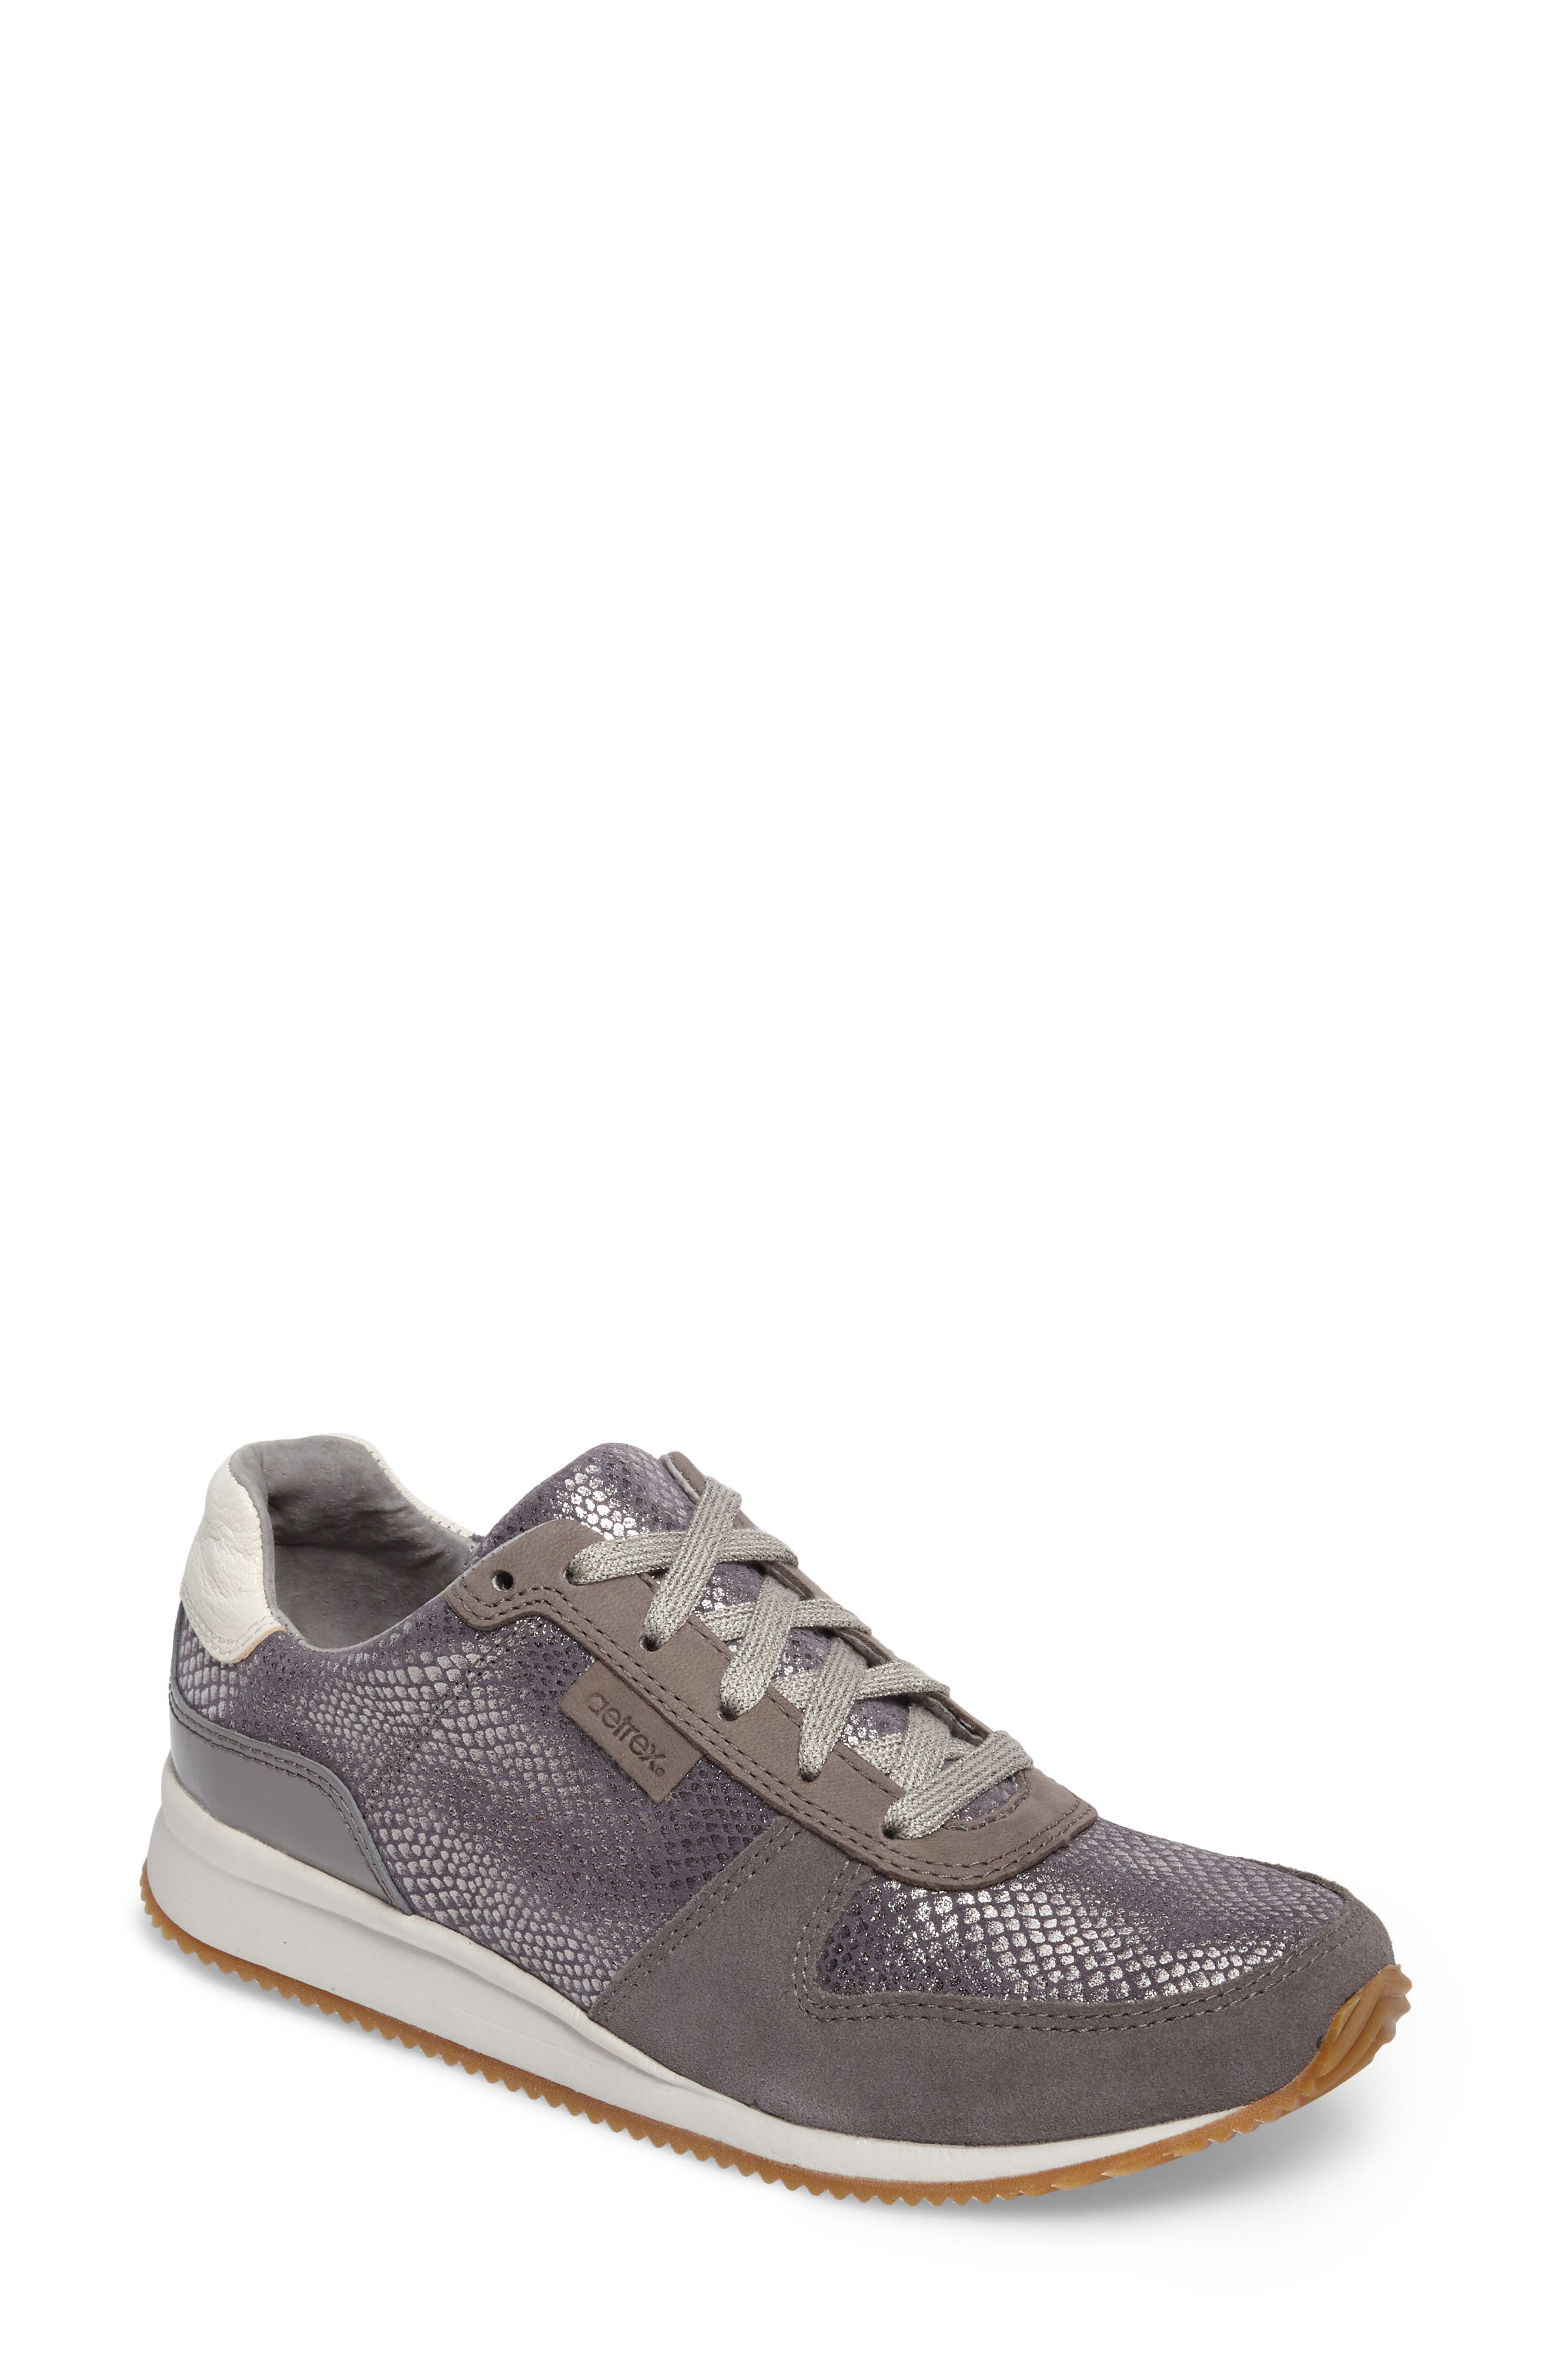 Daphne Sneaker,                             Main thumbnail 1, color,                             Grey Leather